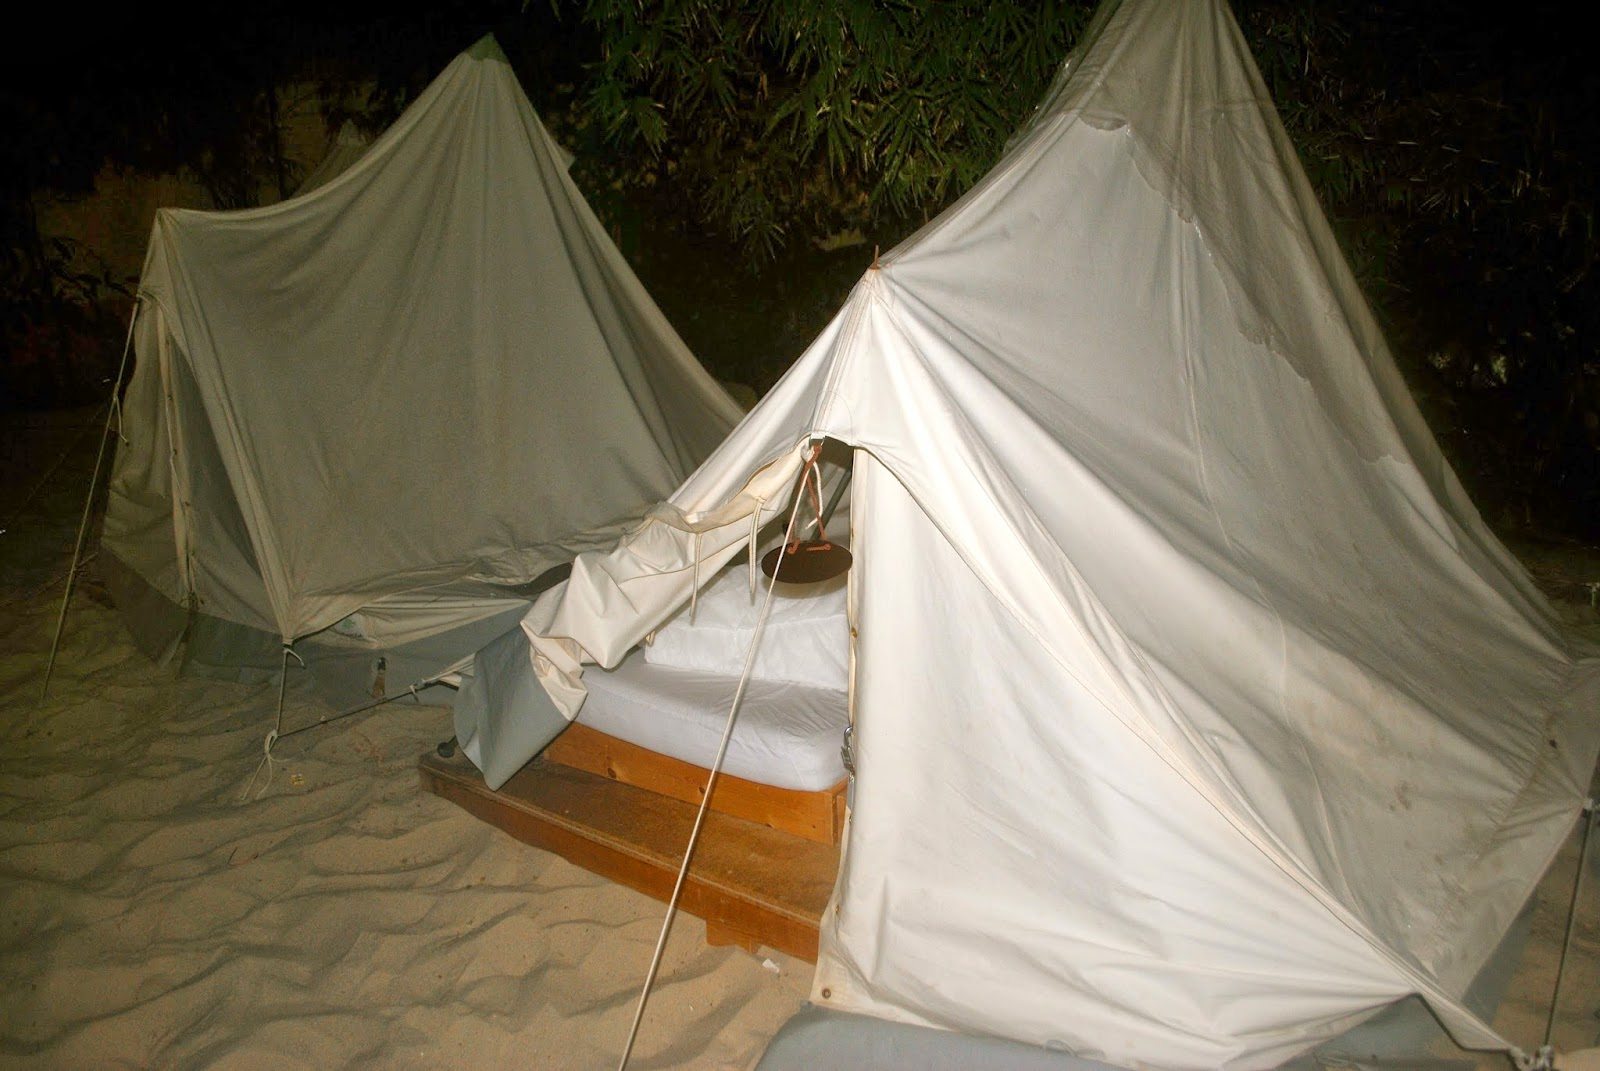 Our tent in the rainforest c&. & Postcards from Erinn: New Yearu0027s Eve at Tropical Islands Resort